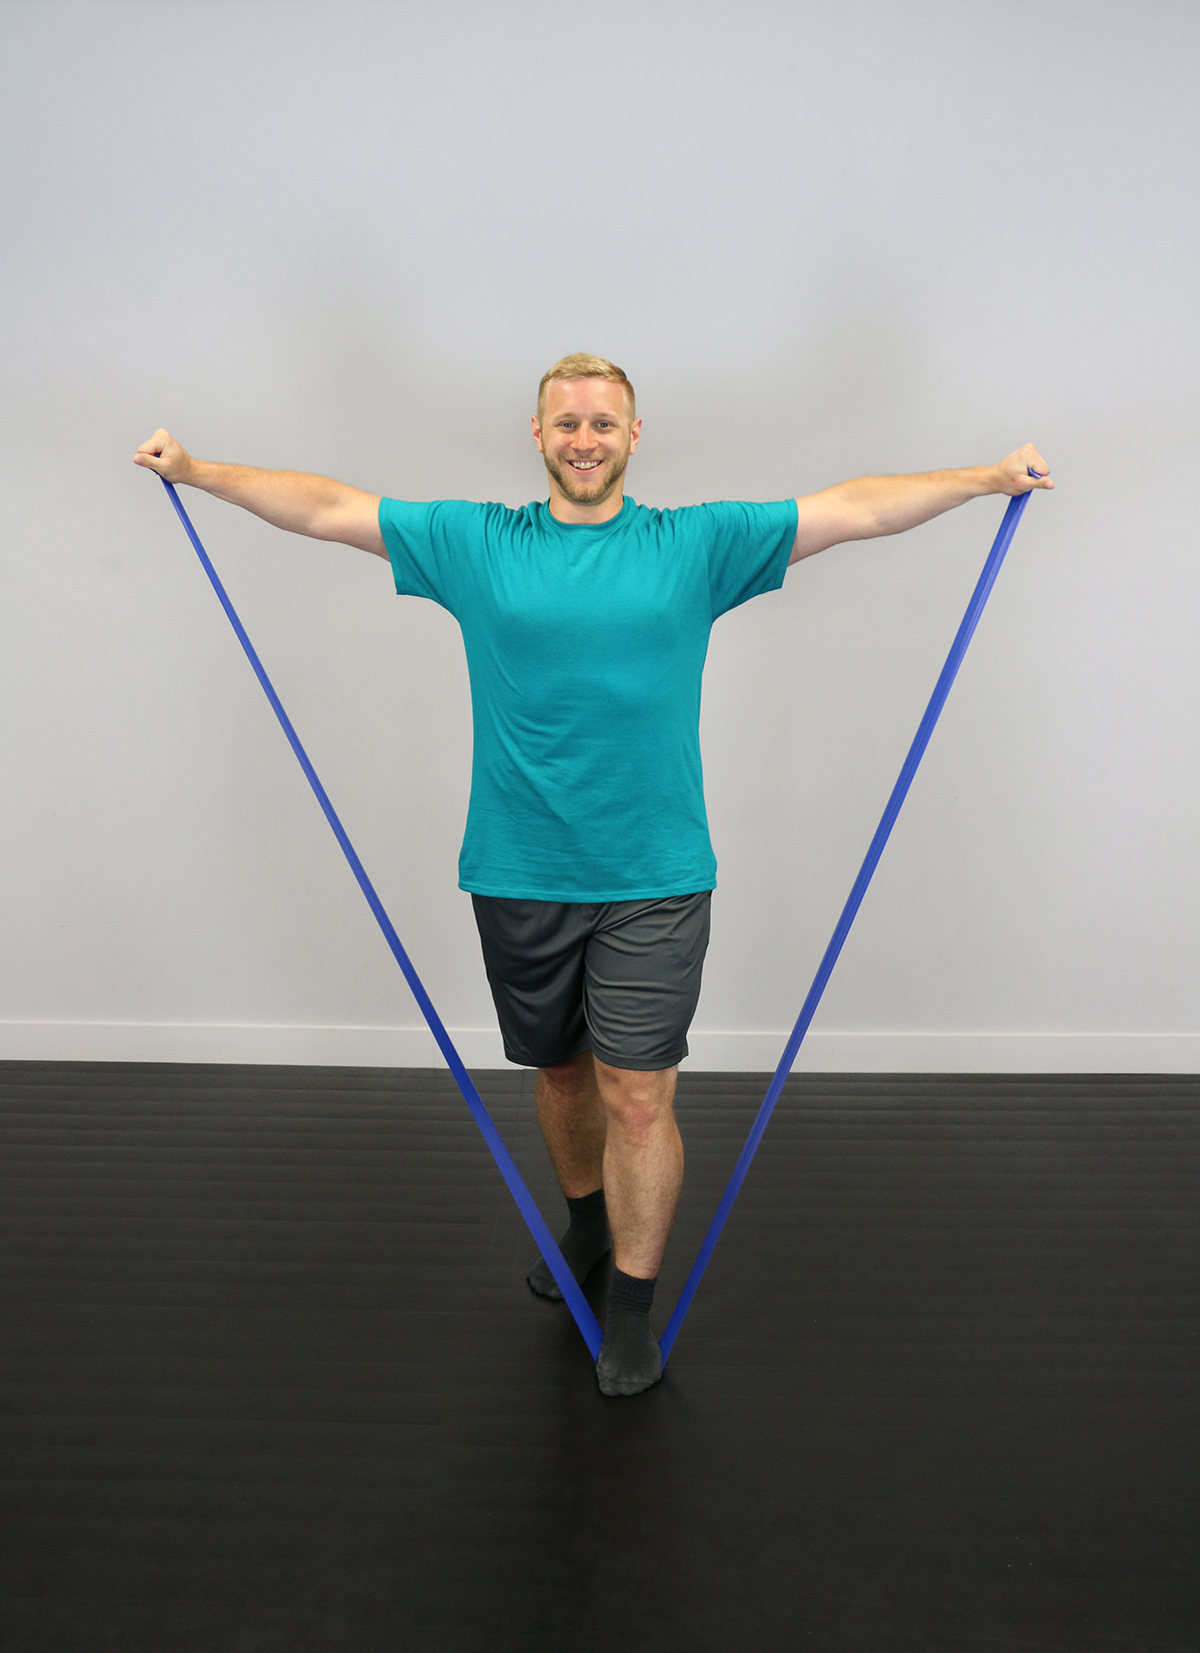 10 resistance band exercises to do anywhere - Best Priced Products